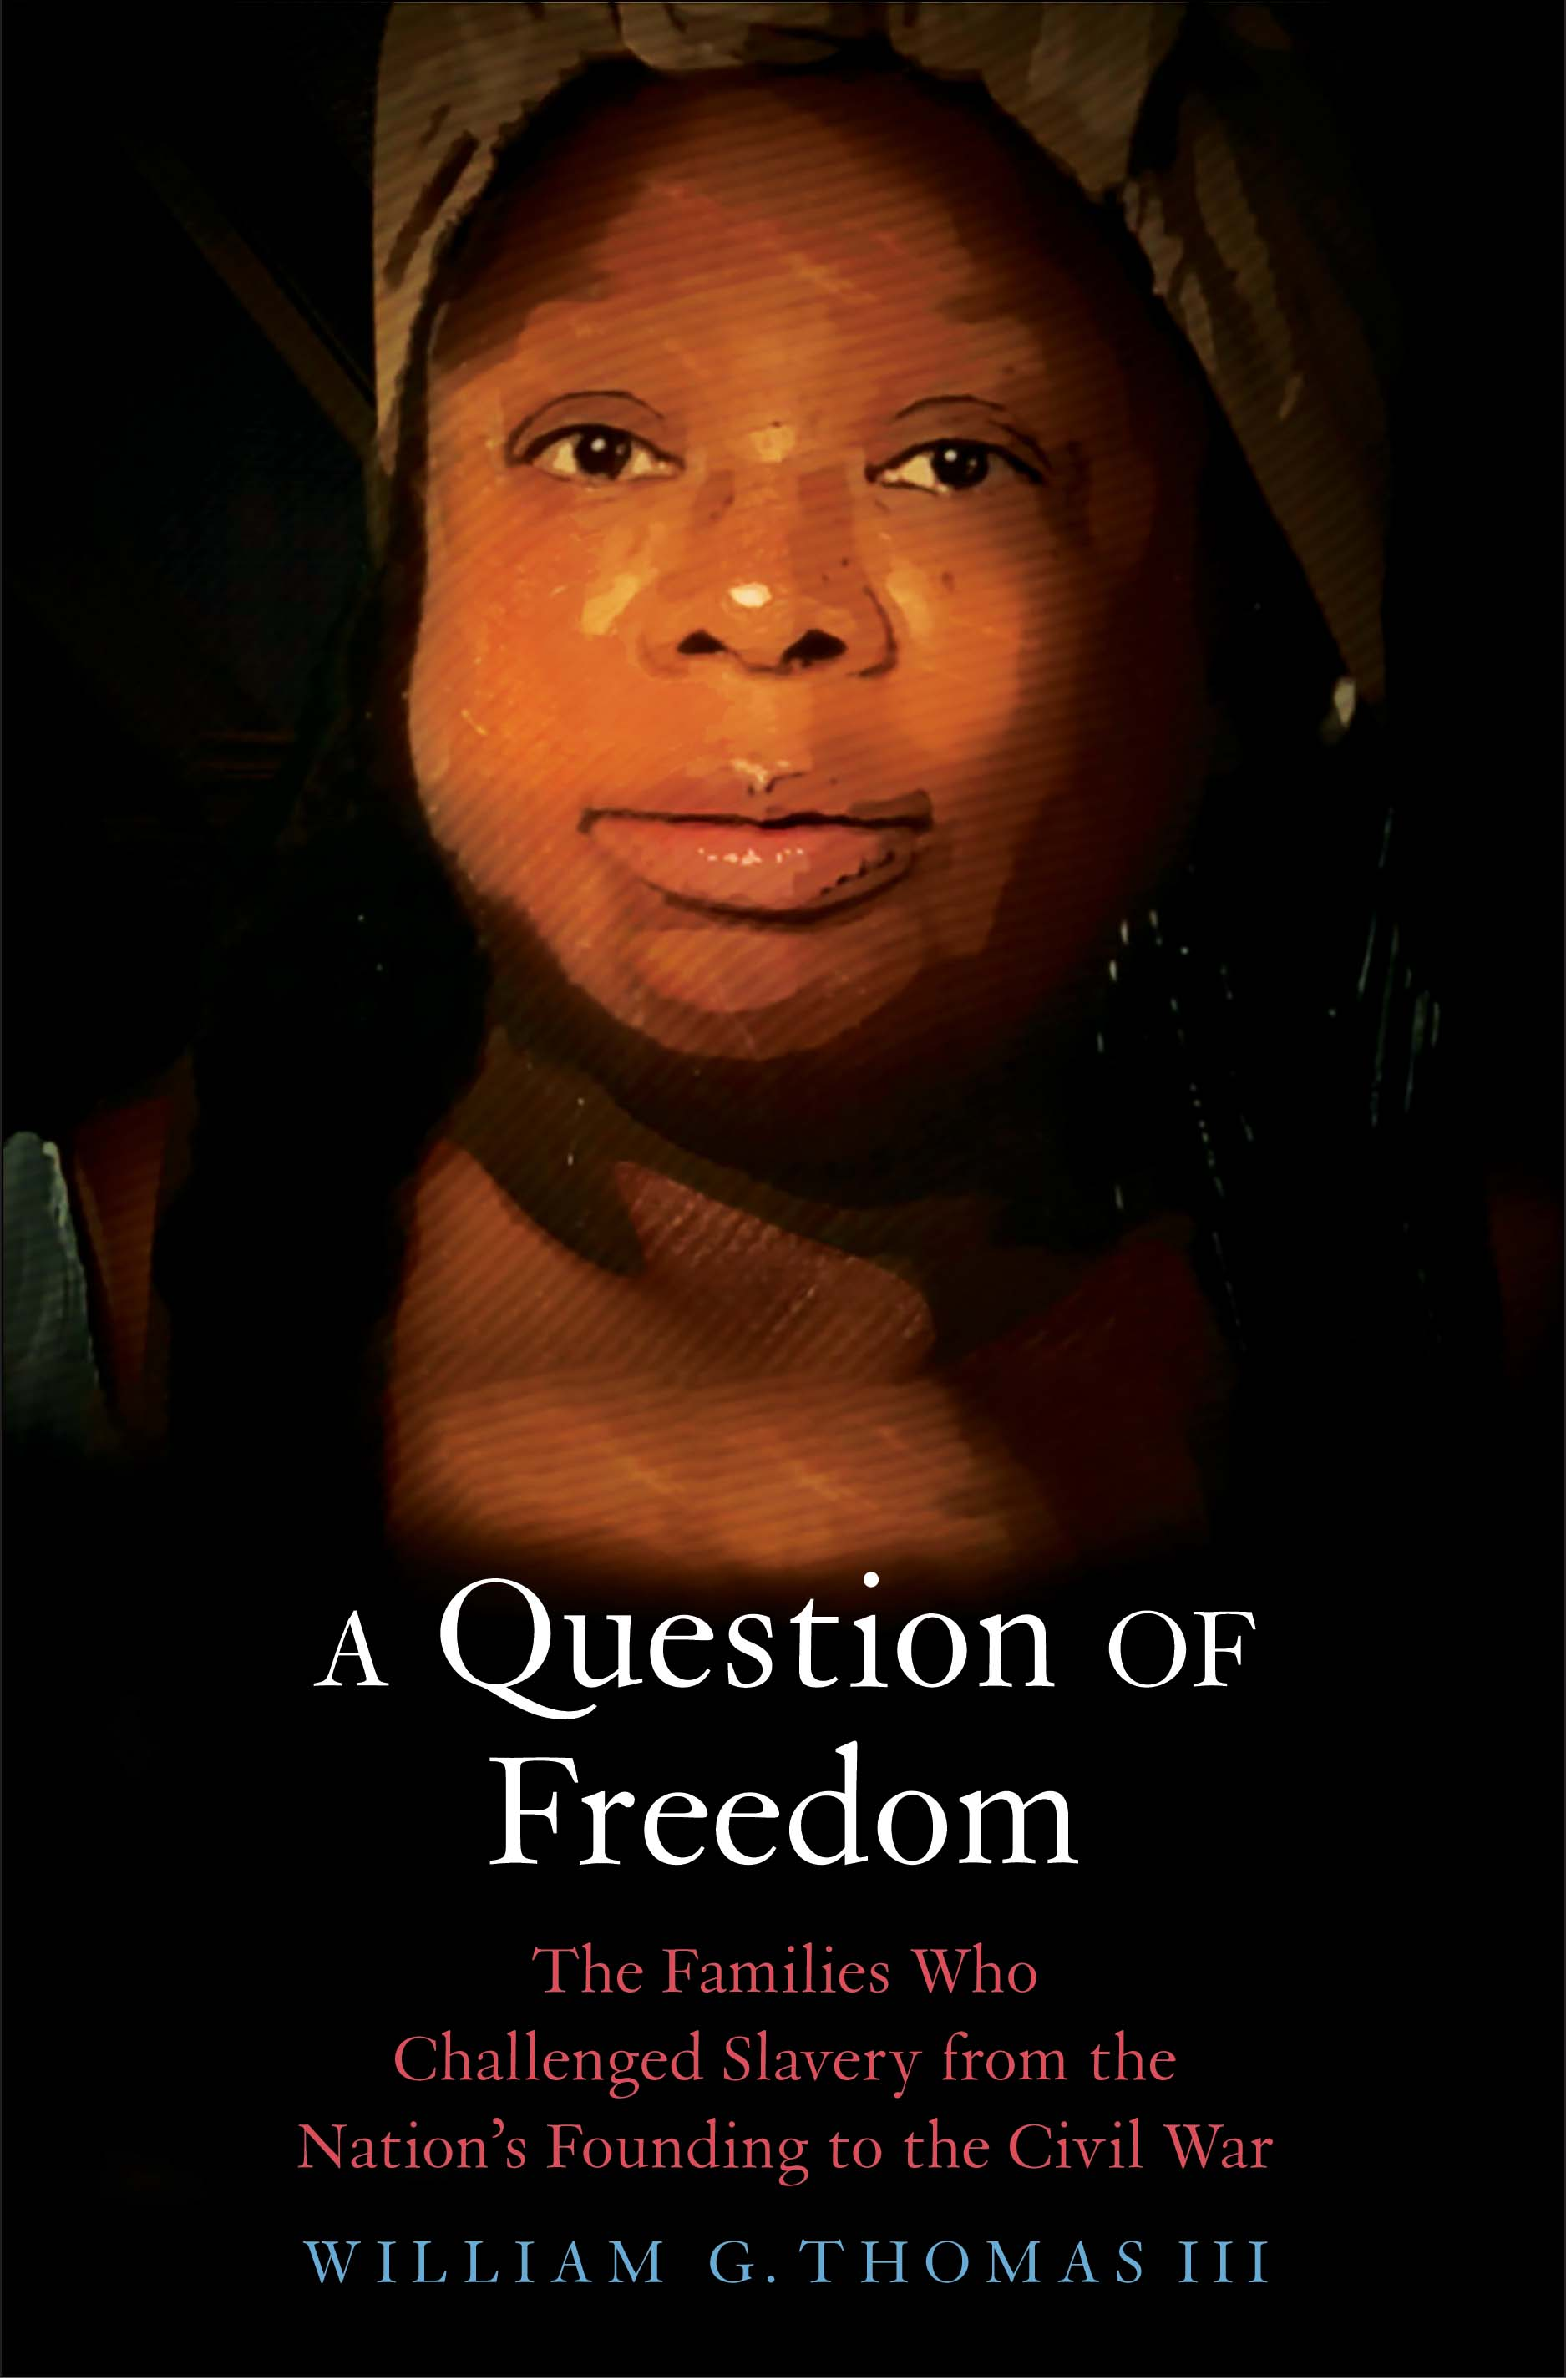 A Question of Freedom: The Families Who Challenged Slavery from the Nation's Founding to the Civil War